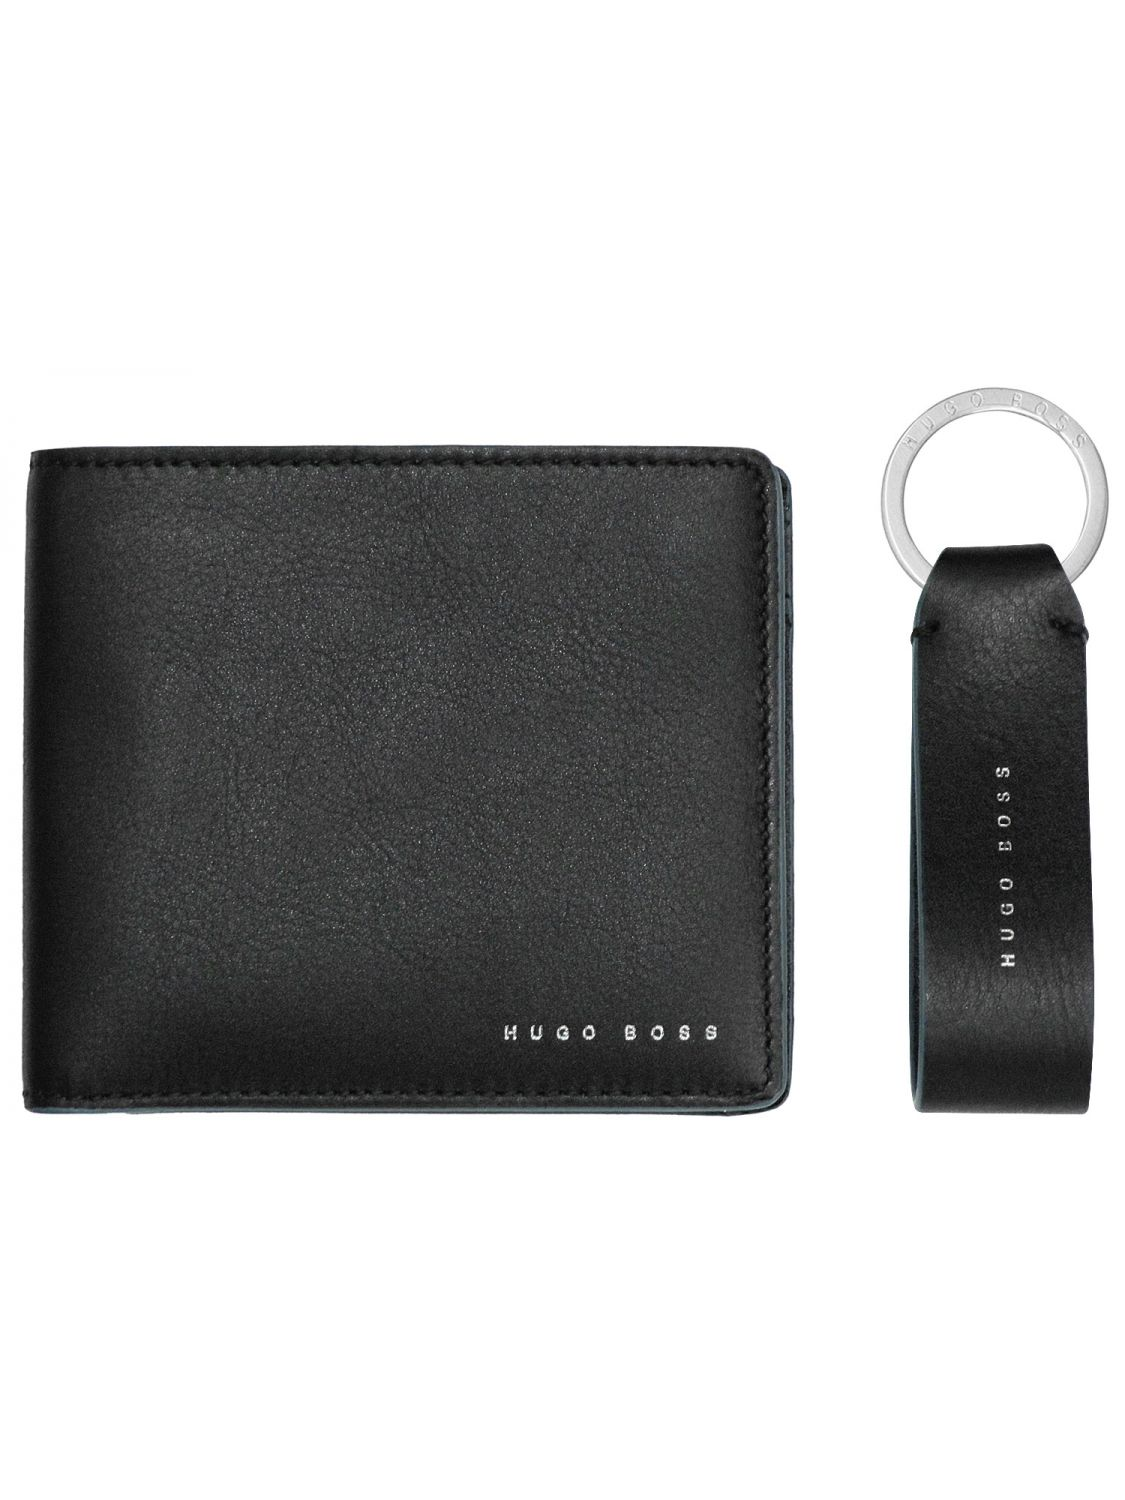 Boss 50397501 Men s Gift Set Wallet and Keyring Pendant Black Image ... 10571e2627